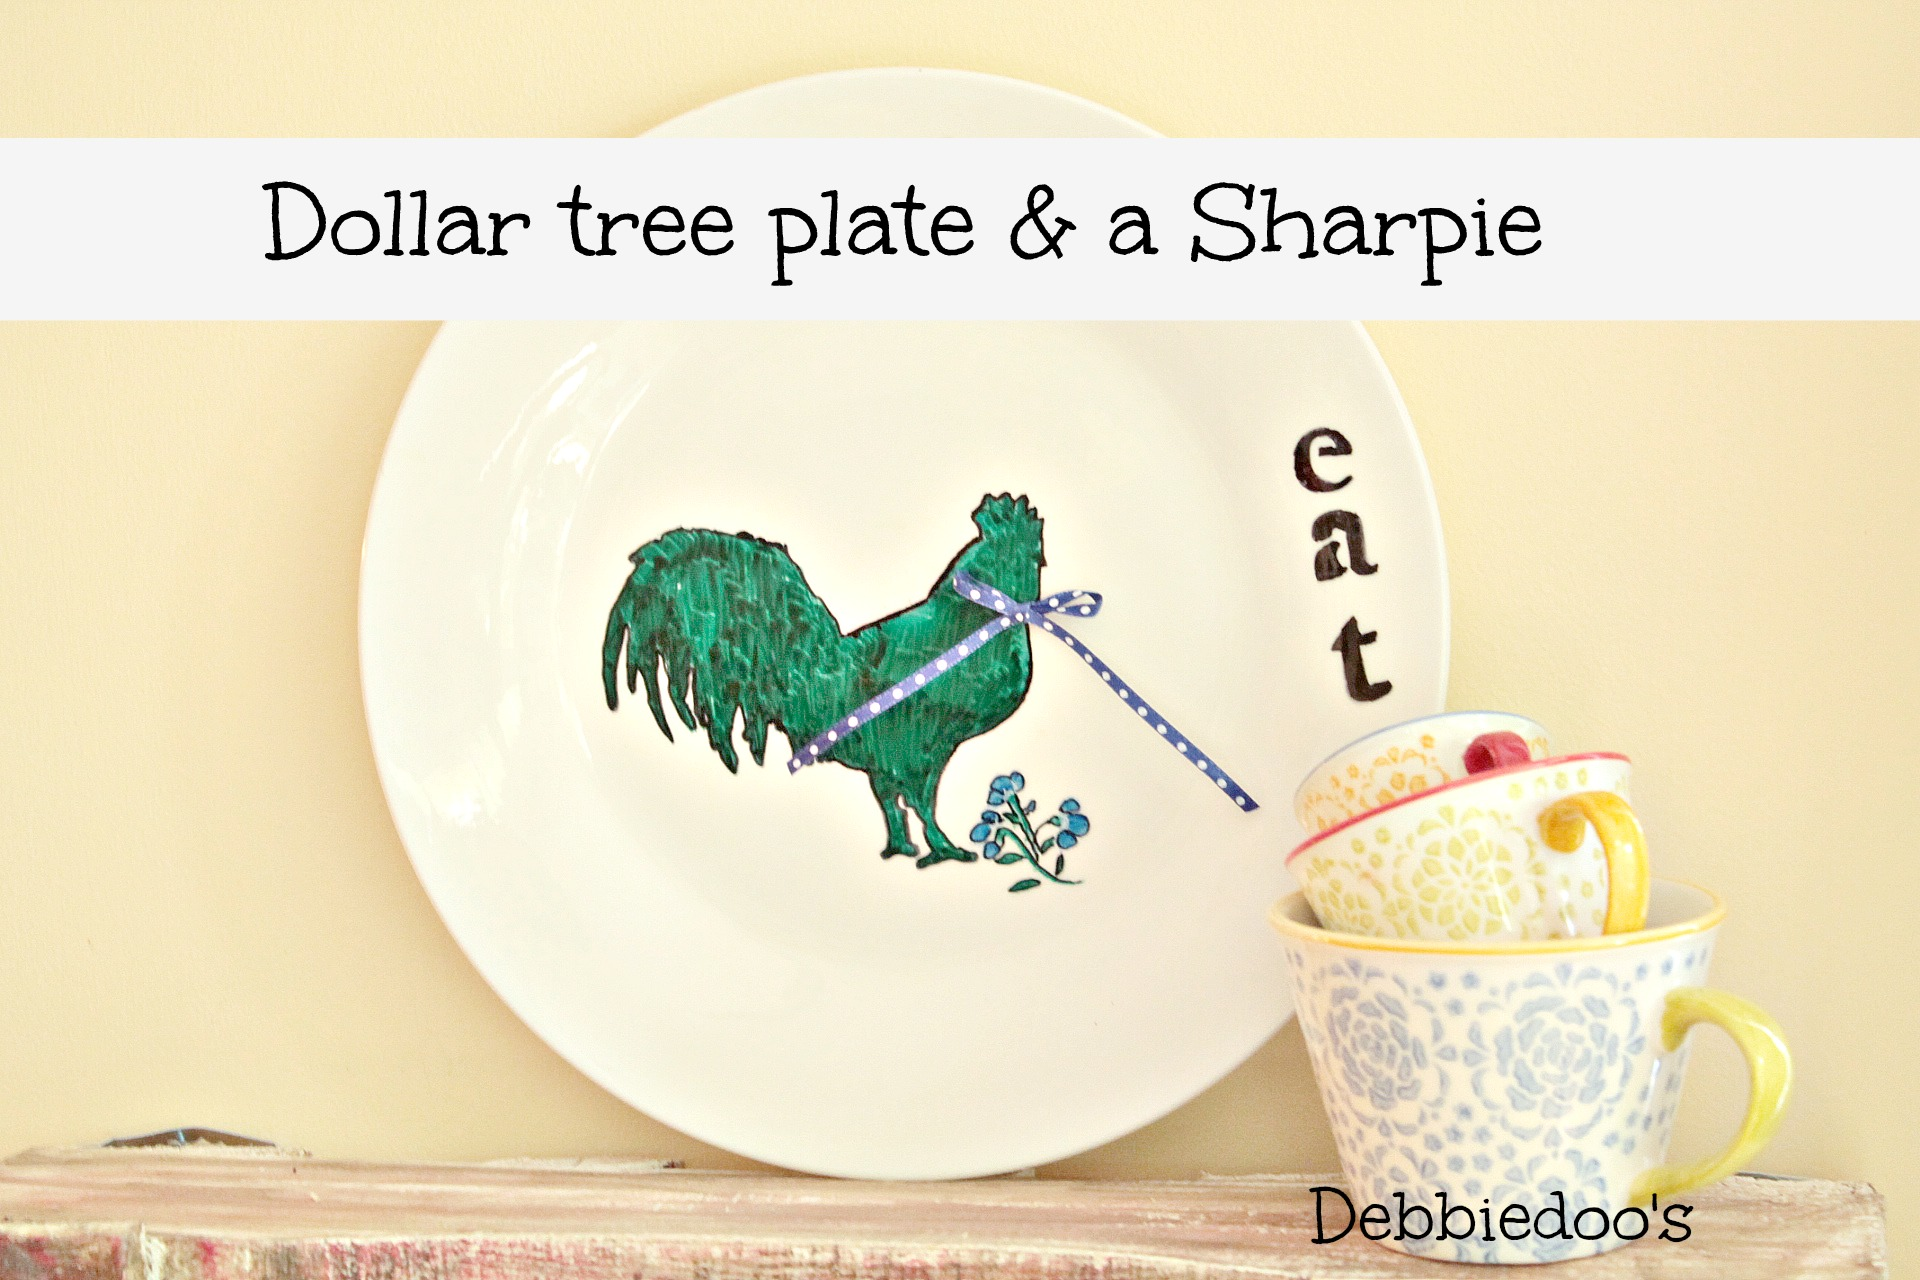 Dollar tree plate with sharpie a rooster and time to eat